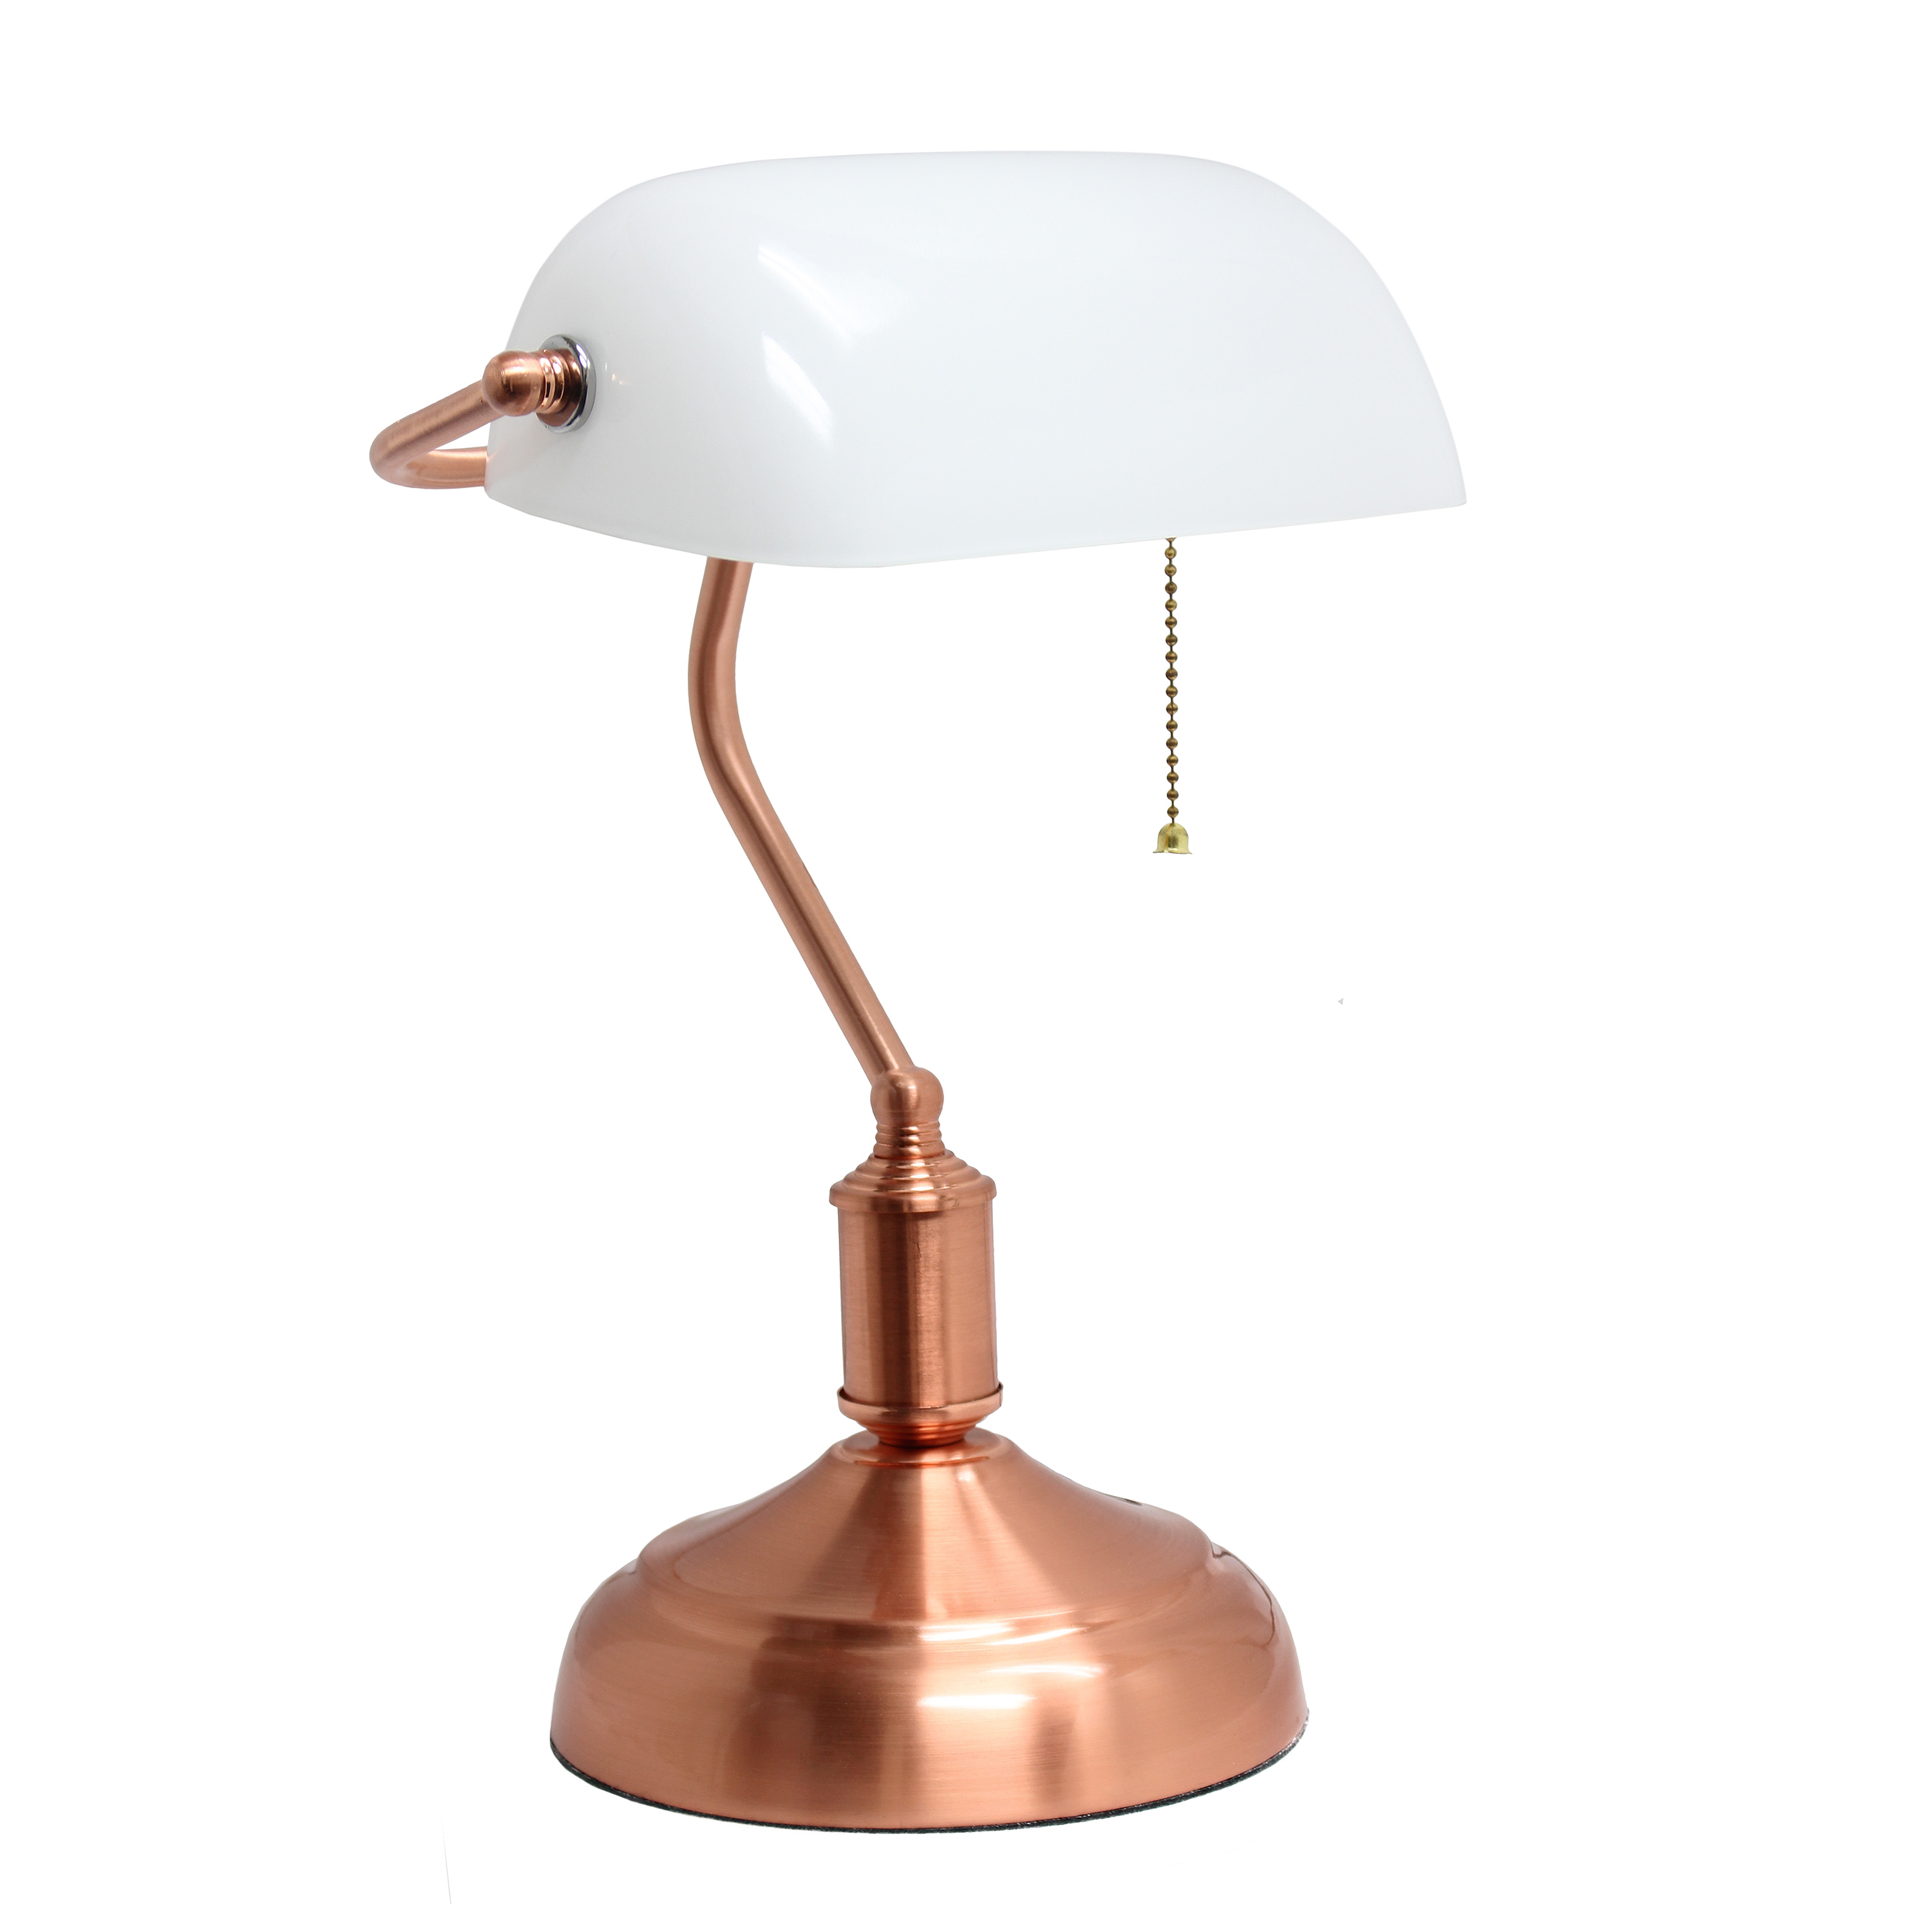 Simple Designs Executive Banker's Desk Lamp with White Glass Shade, Rose Gold